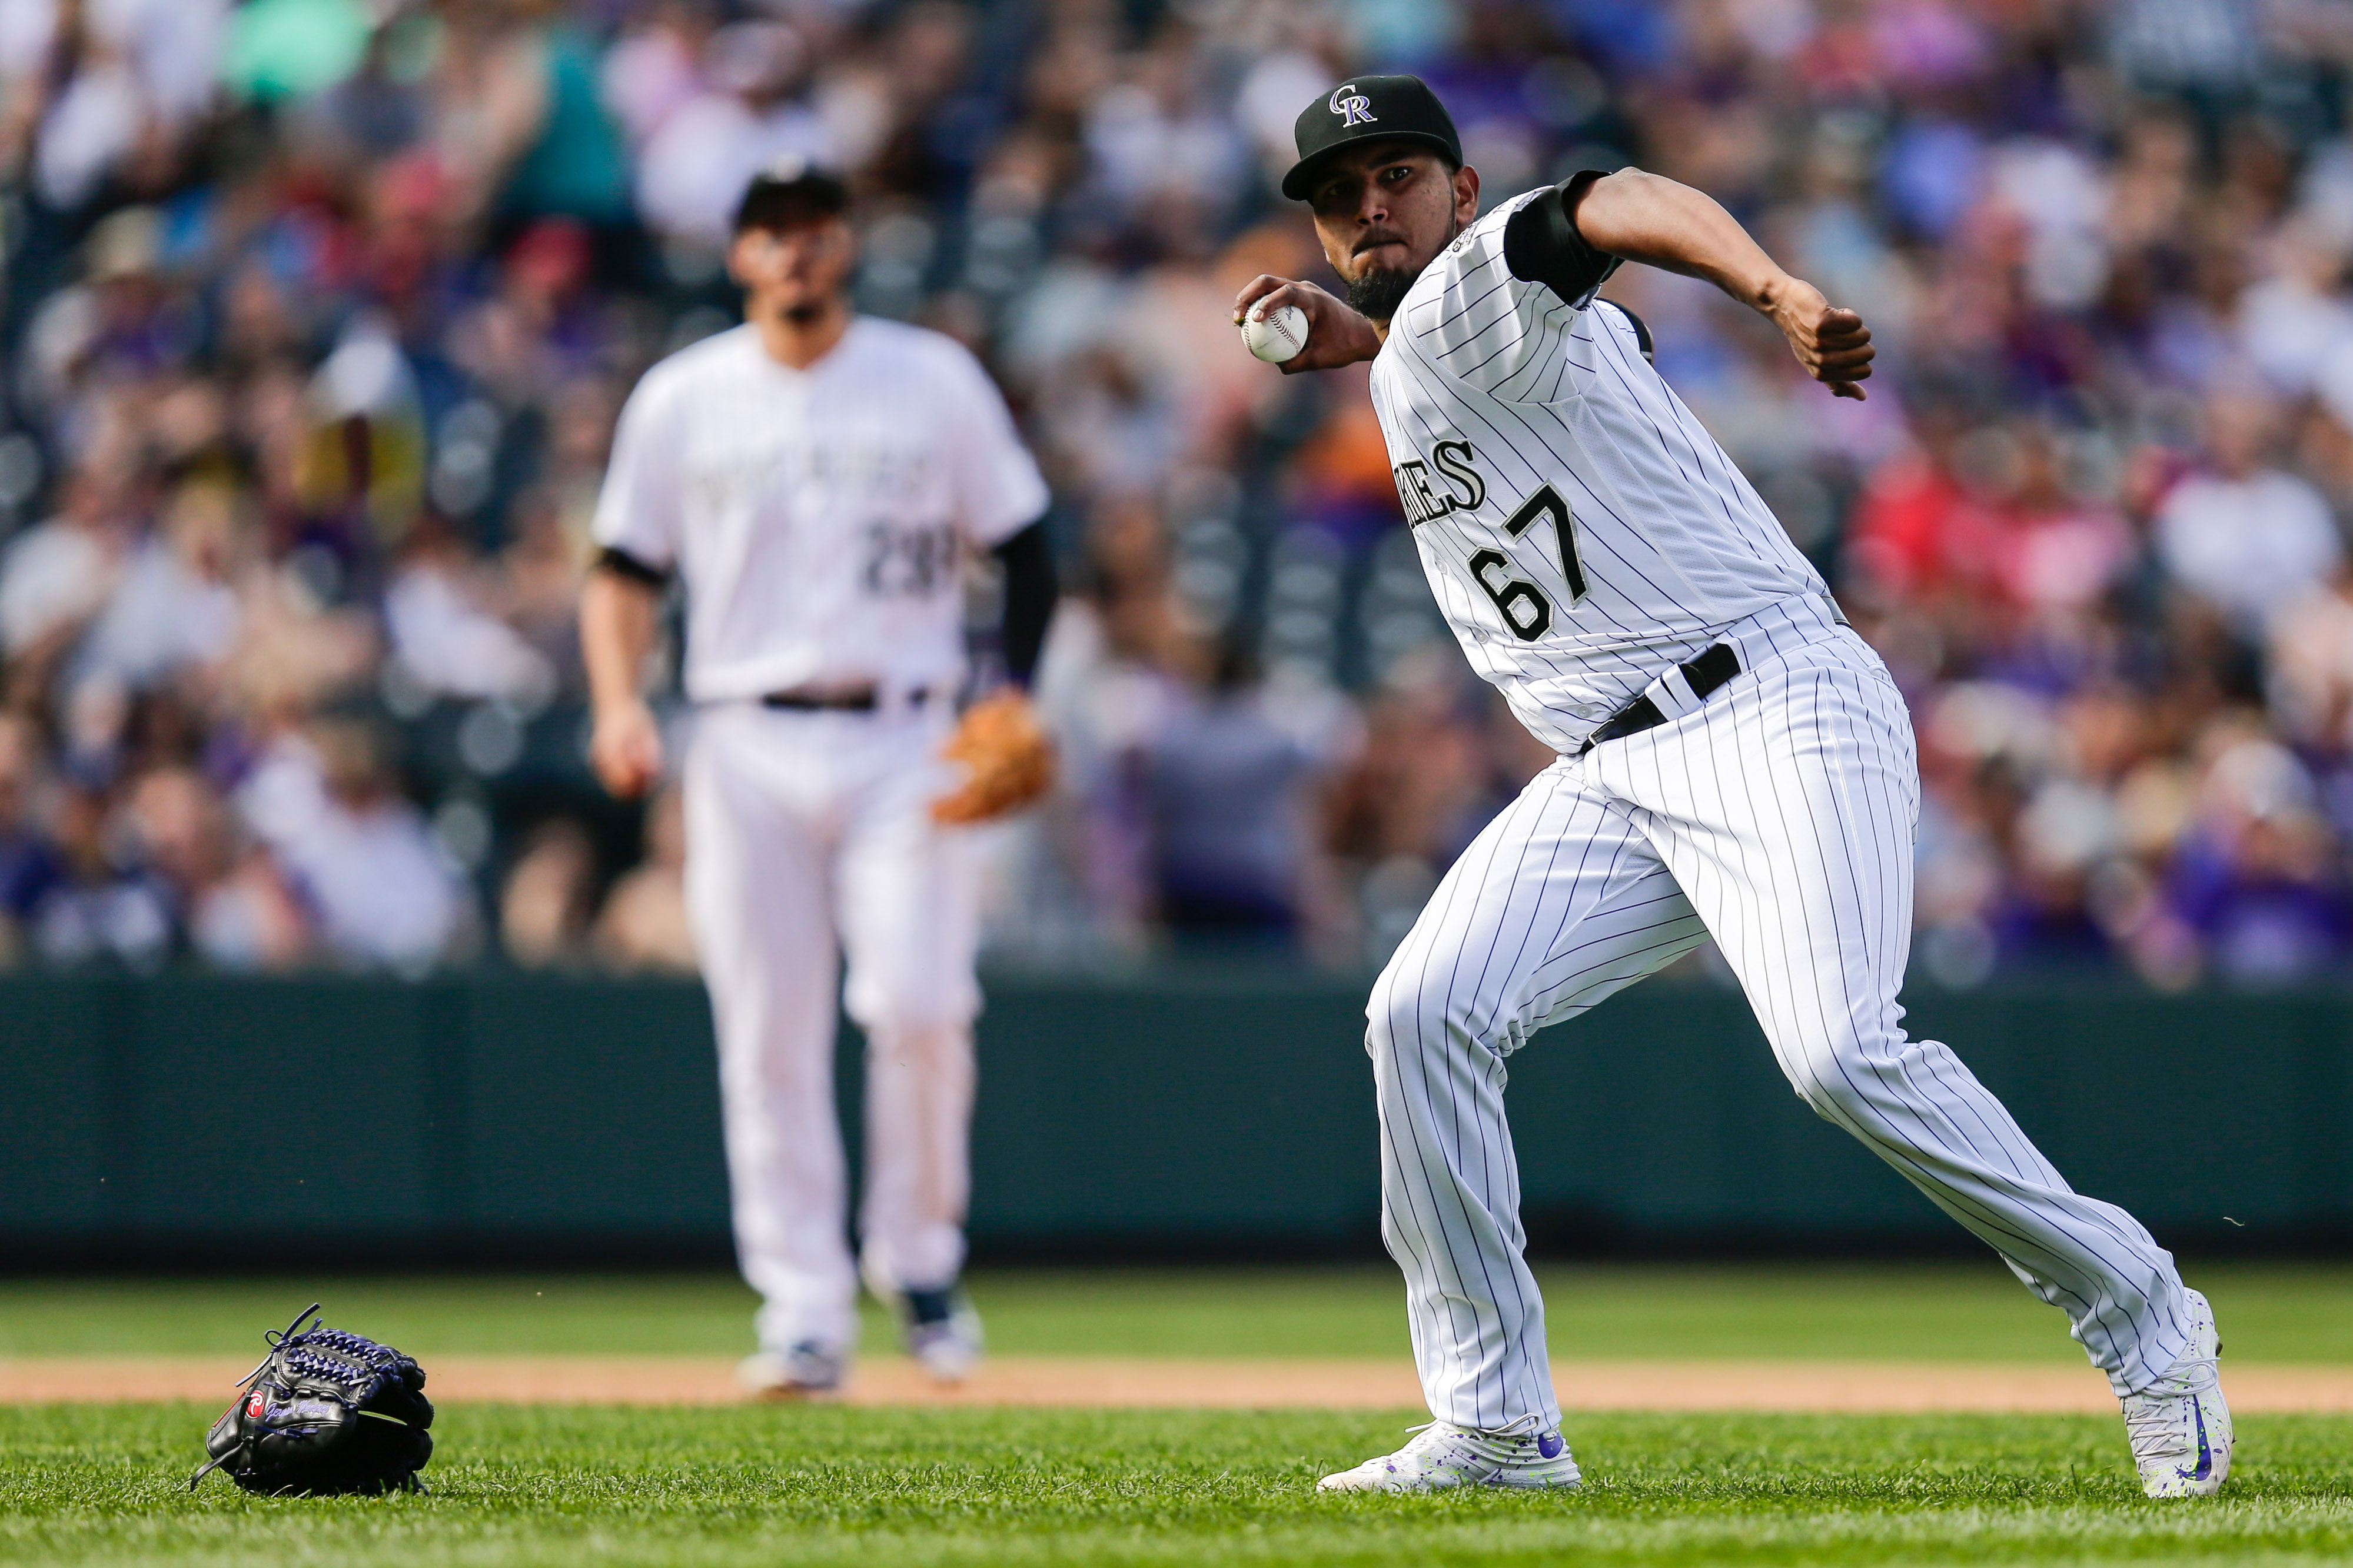 Oct 2, 2016; Denver, CO, USA; Colorado Rockies starting pitcher German Marquez (67) throws to first after losing his glove fielding the ball in the fourth inning against the Milwaukee Brewers at Coors Field. Mandatory Credit: Isaiah J. Downing-USA TODAY Sports